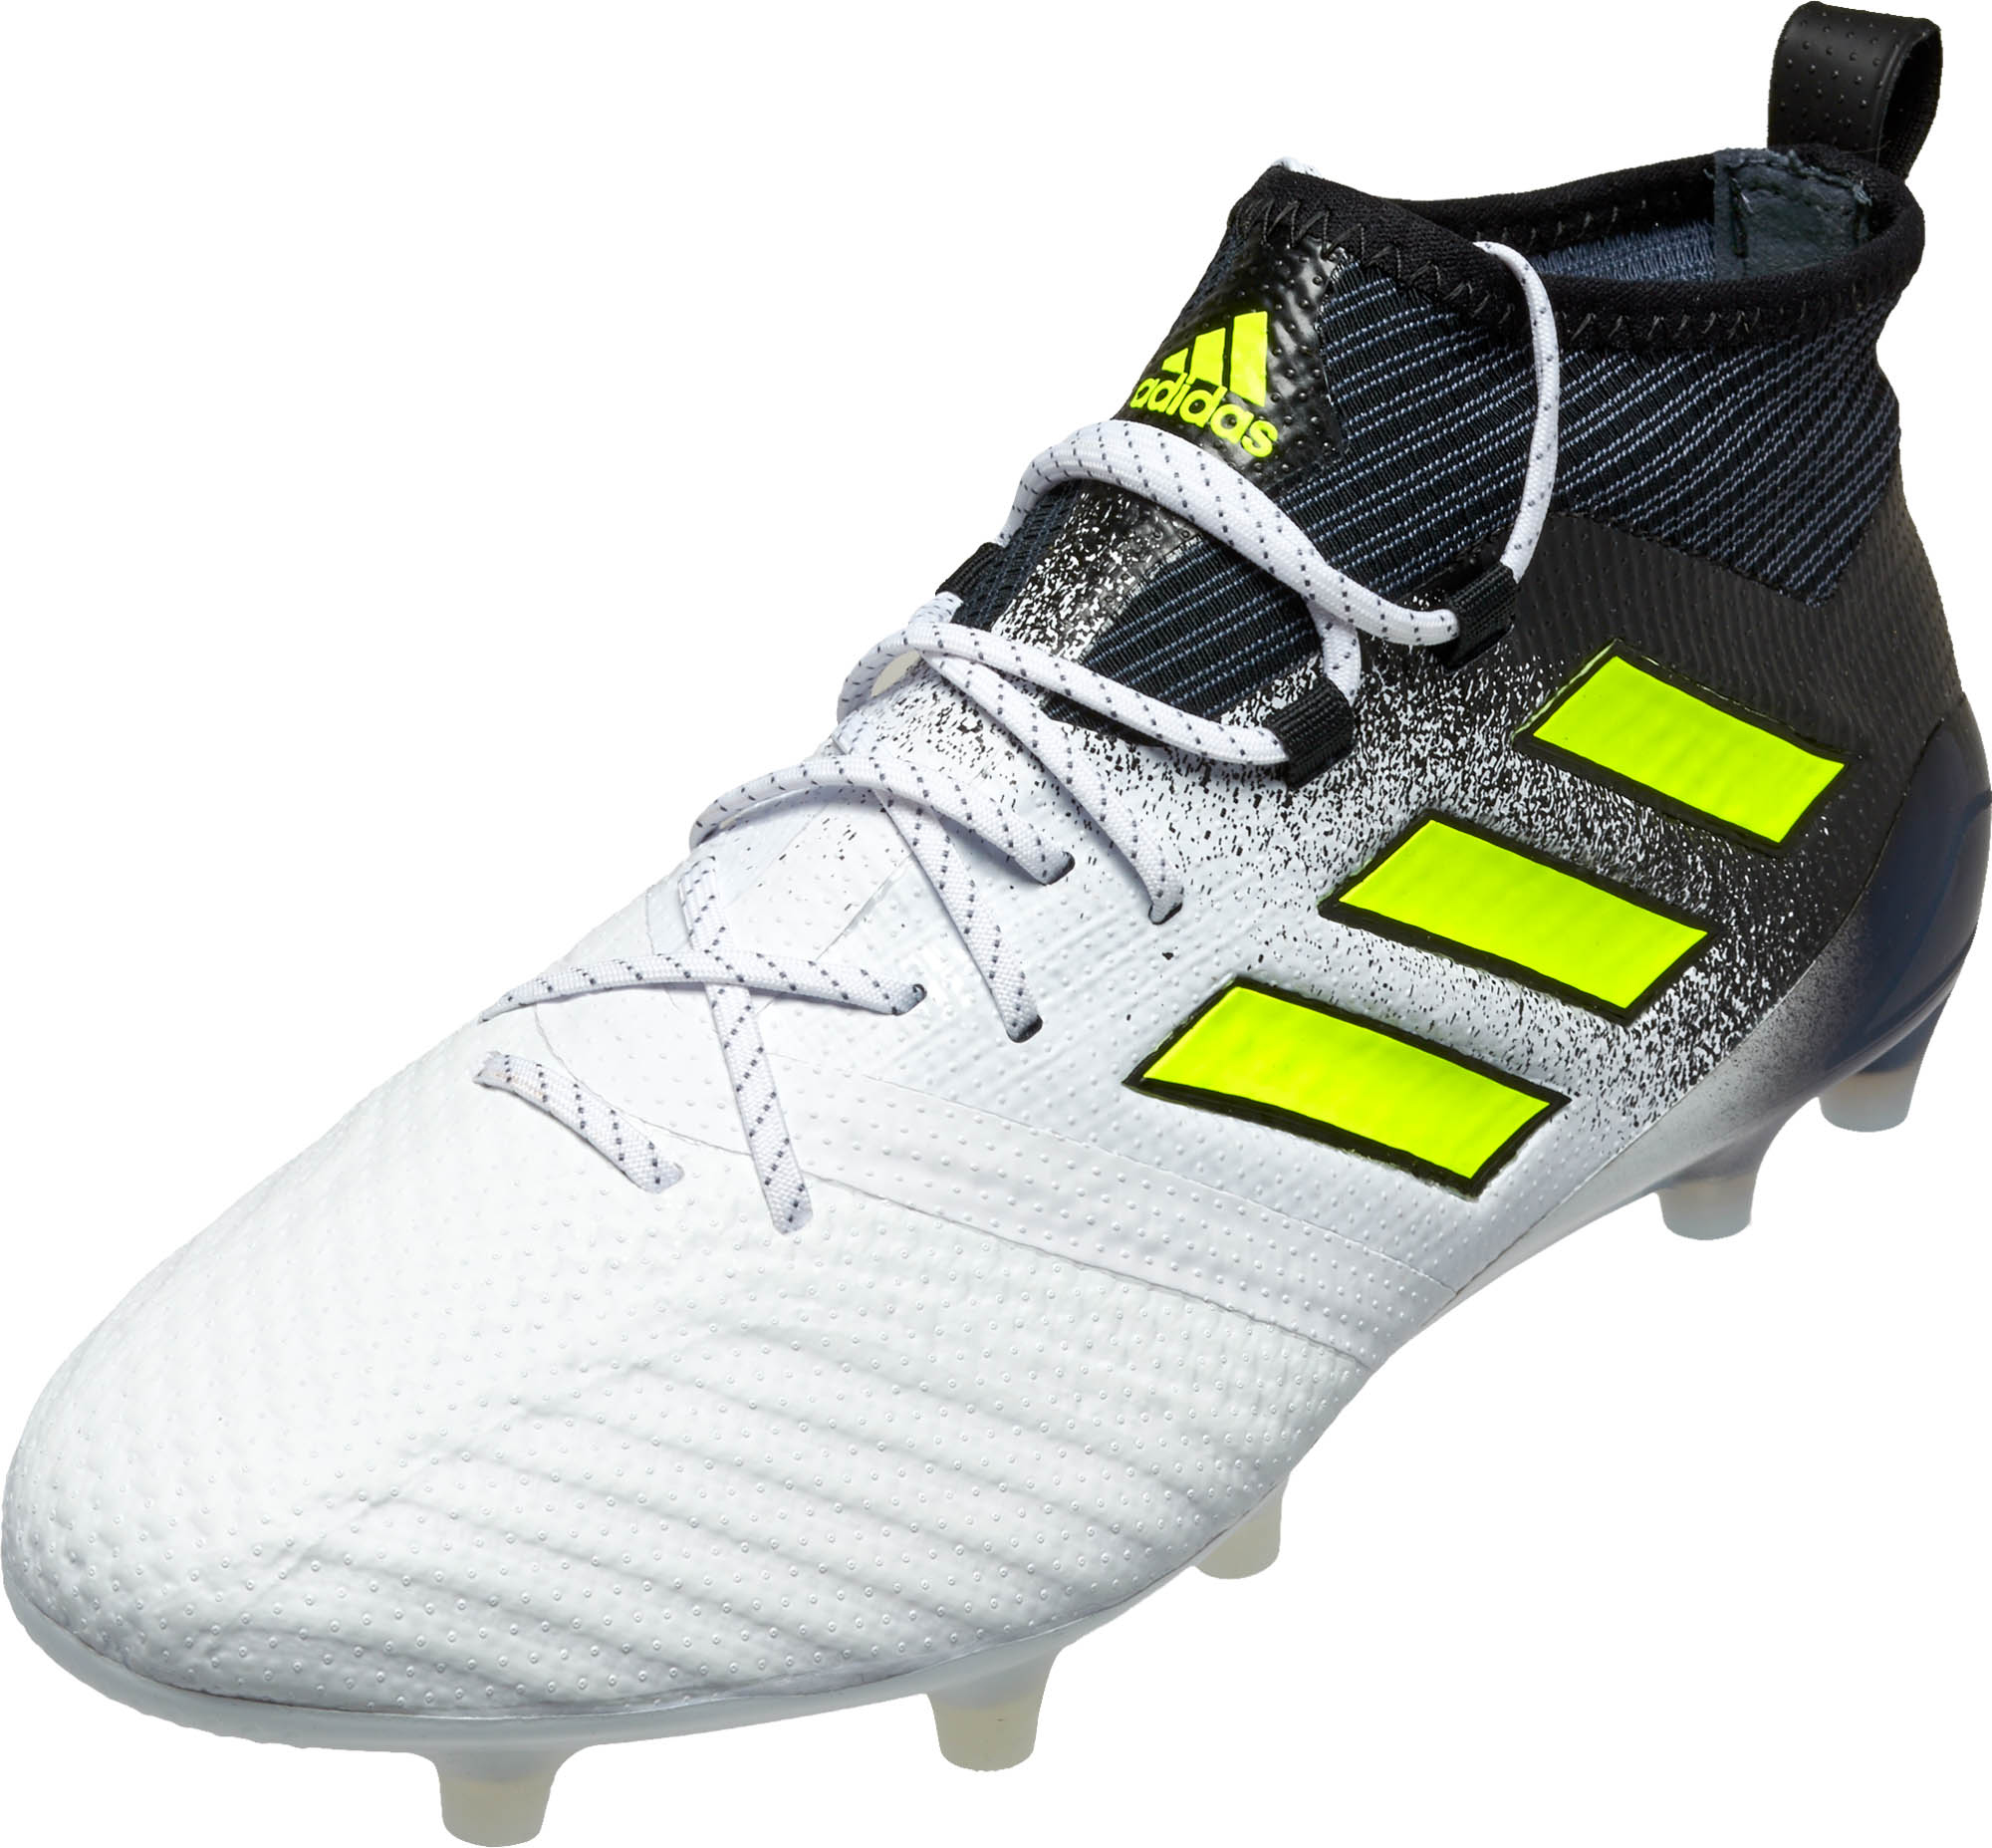 627f28a37 adidas ACE 17.1 FG - White adidas ACE Soccer Cleats